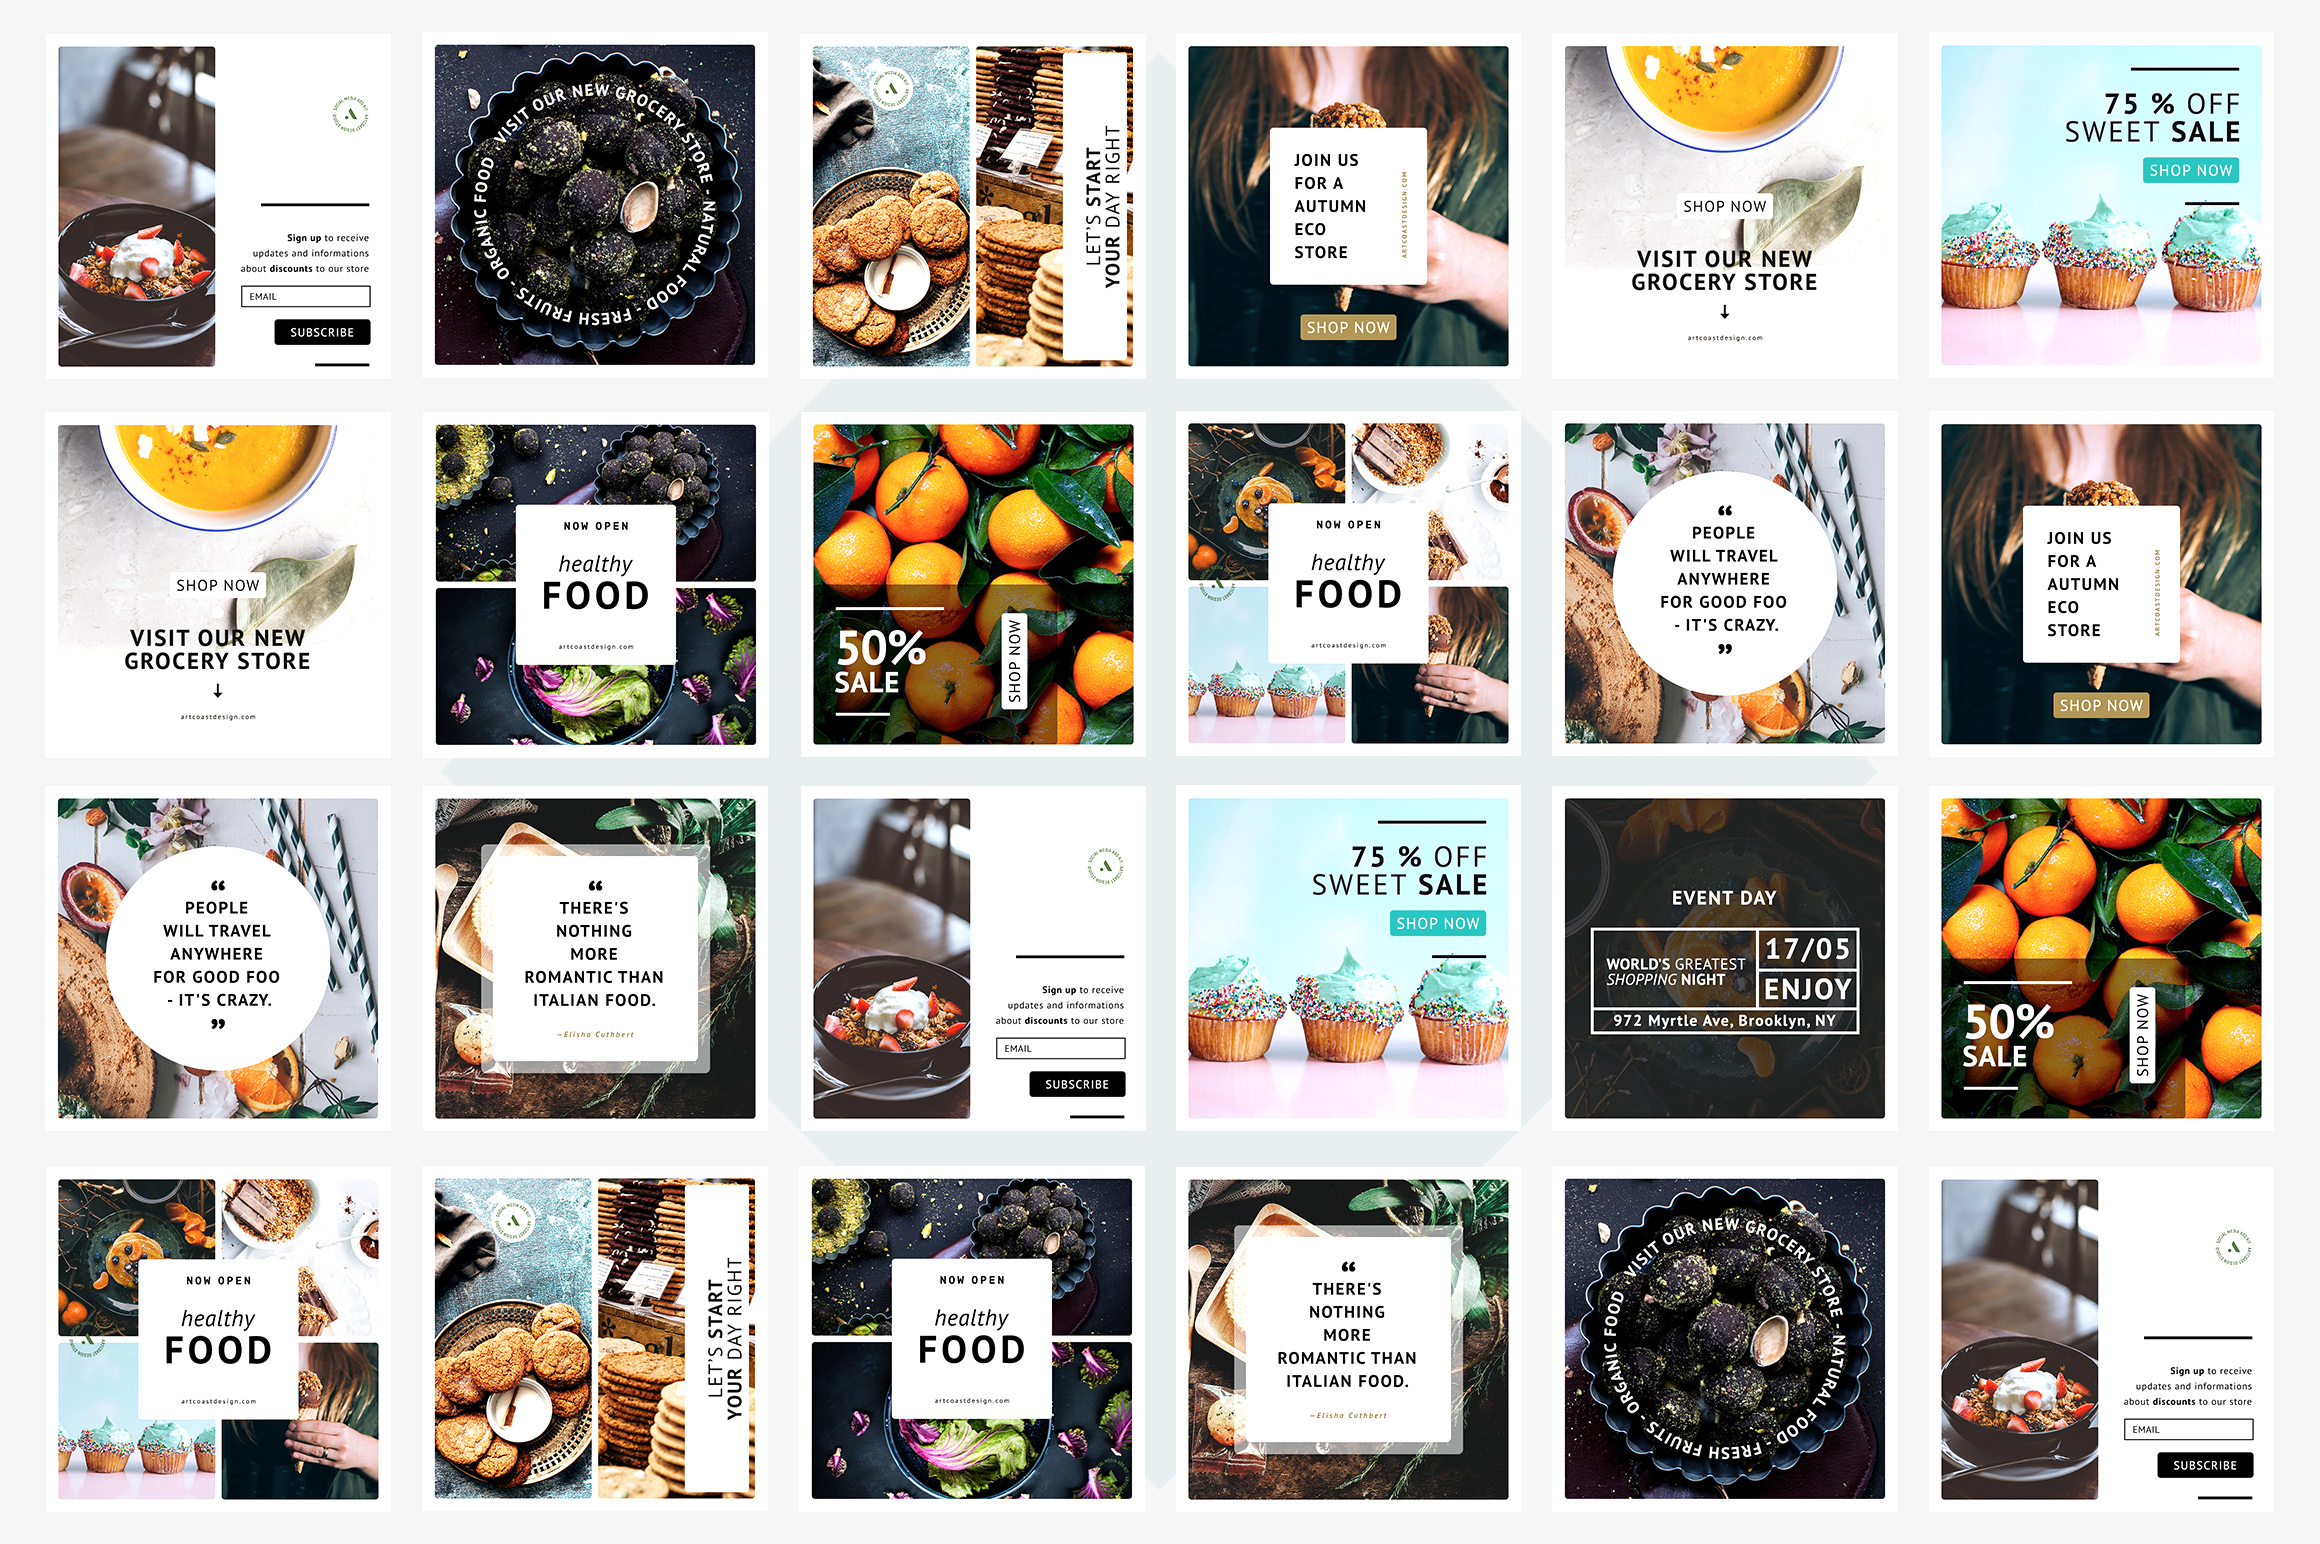 24 Instagram Templates Graphic Graphic Templates By Dmitry Mashkin - Image 2